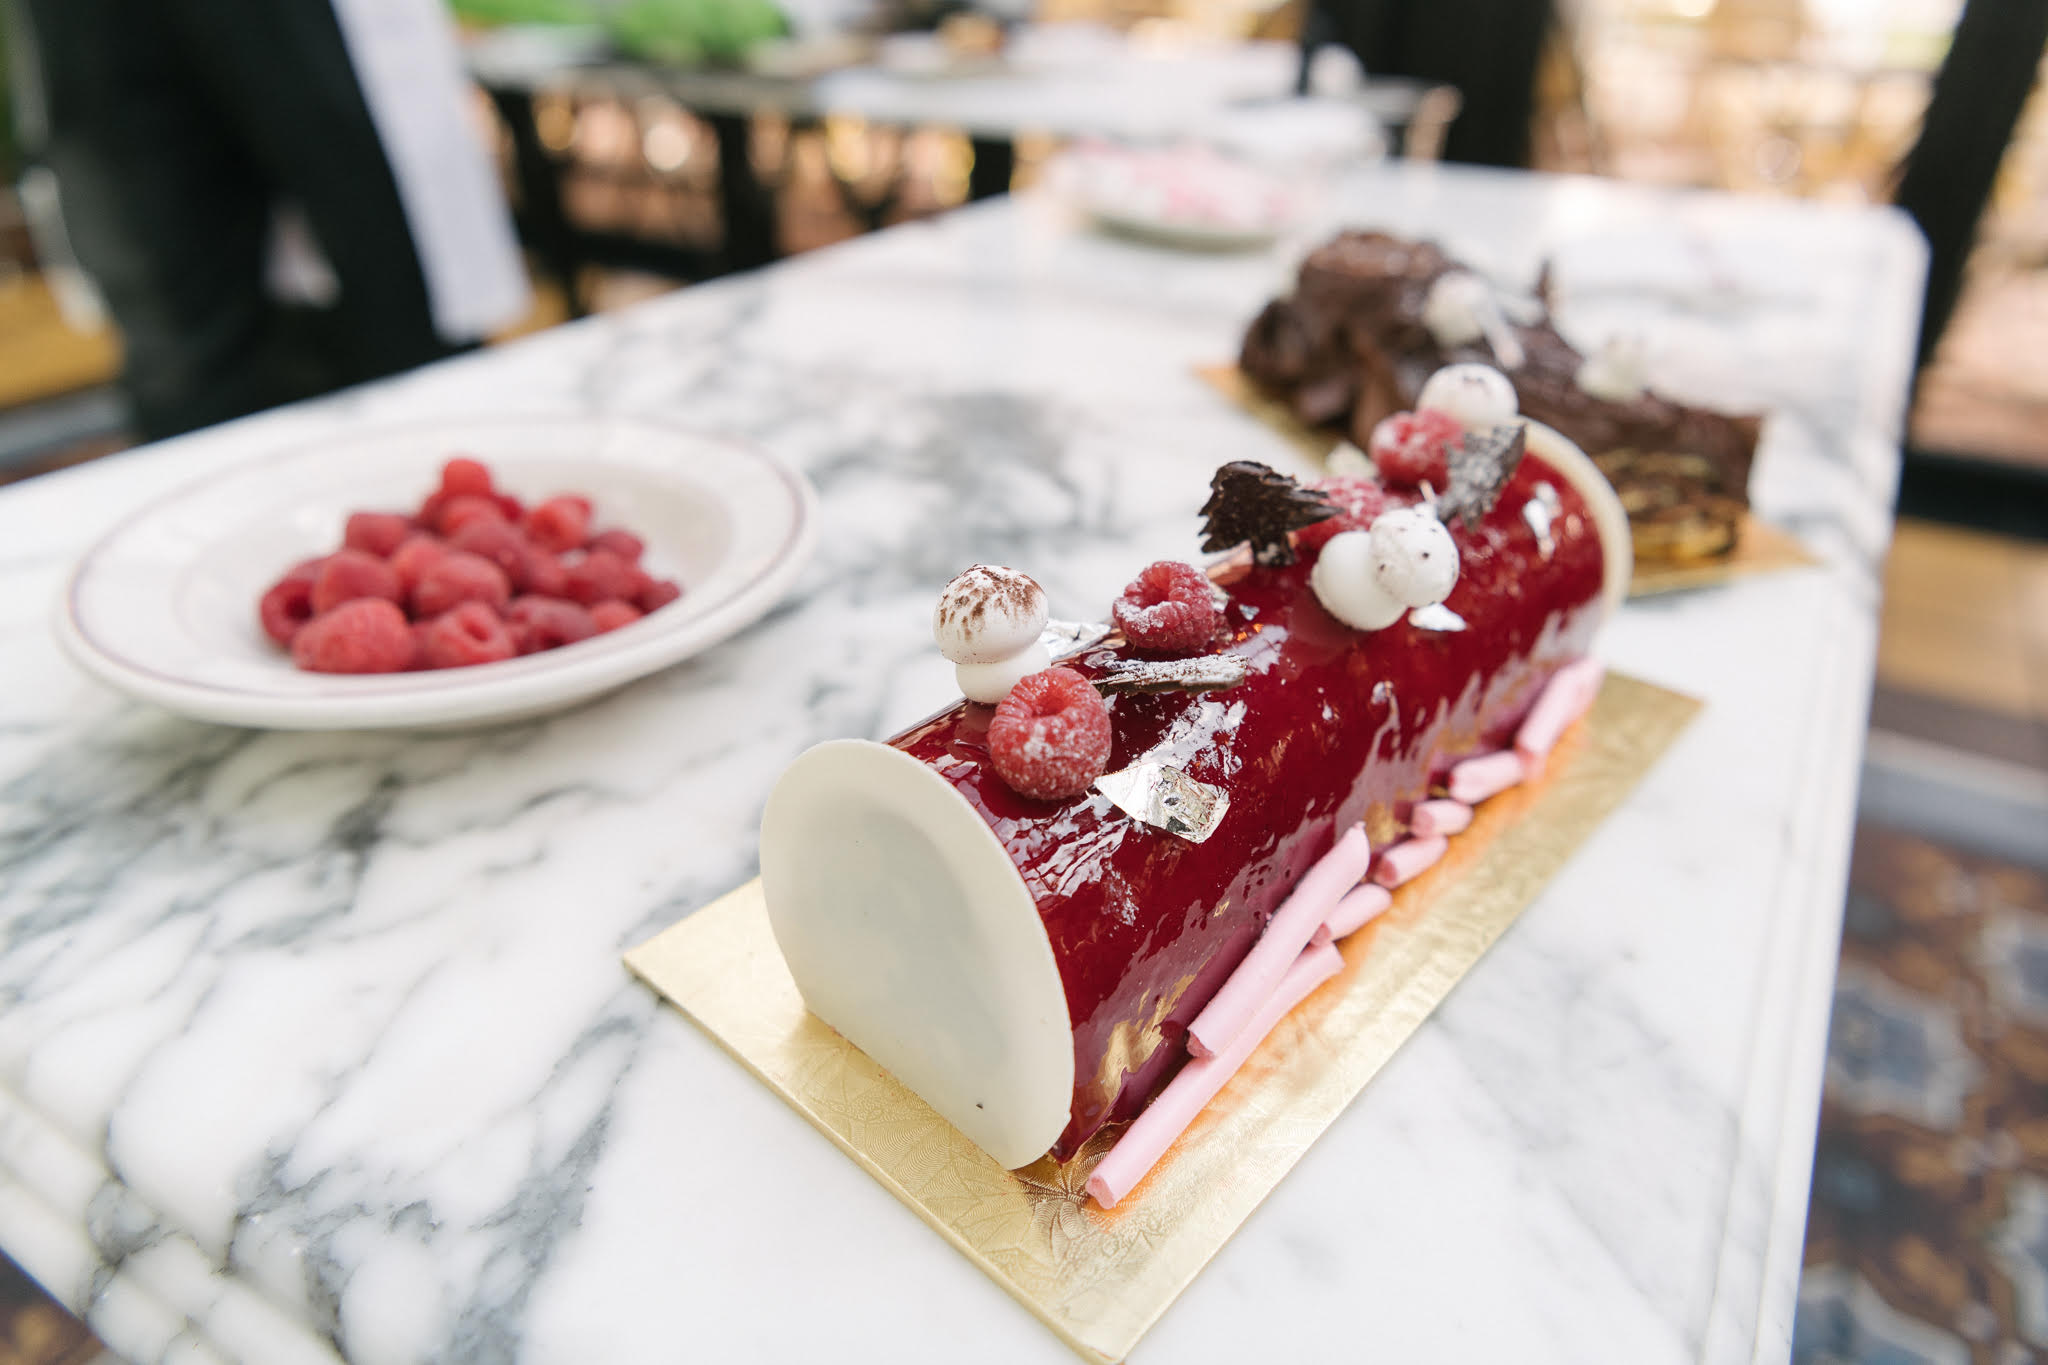 Bûche de Noël from Le Diplomate //{ }Price: $40 // Purchase by calling 202-332.3333 48 hours in advance { }//  https://lediplomatedc.com // (Image: Le Diplomate)